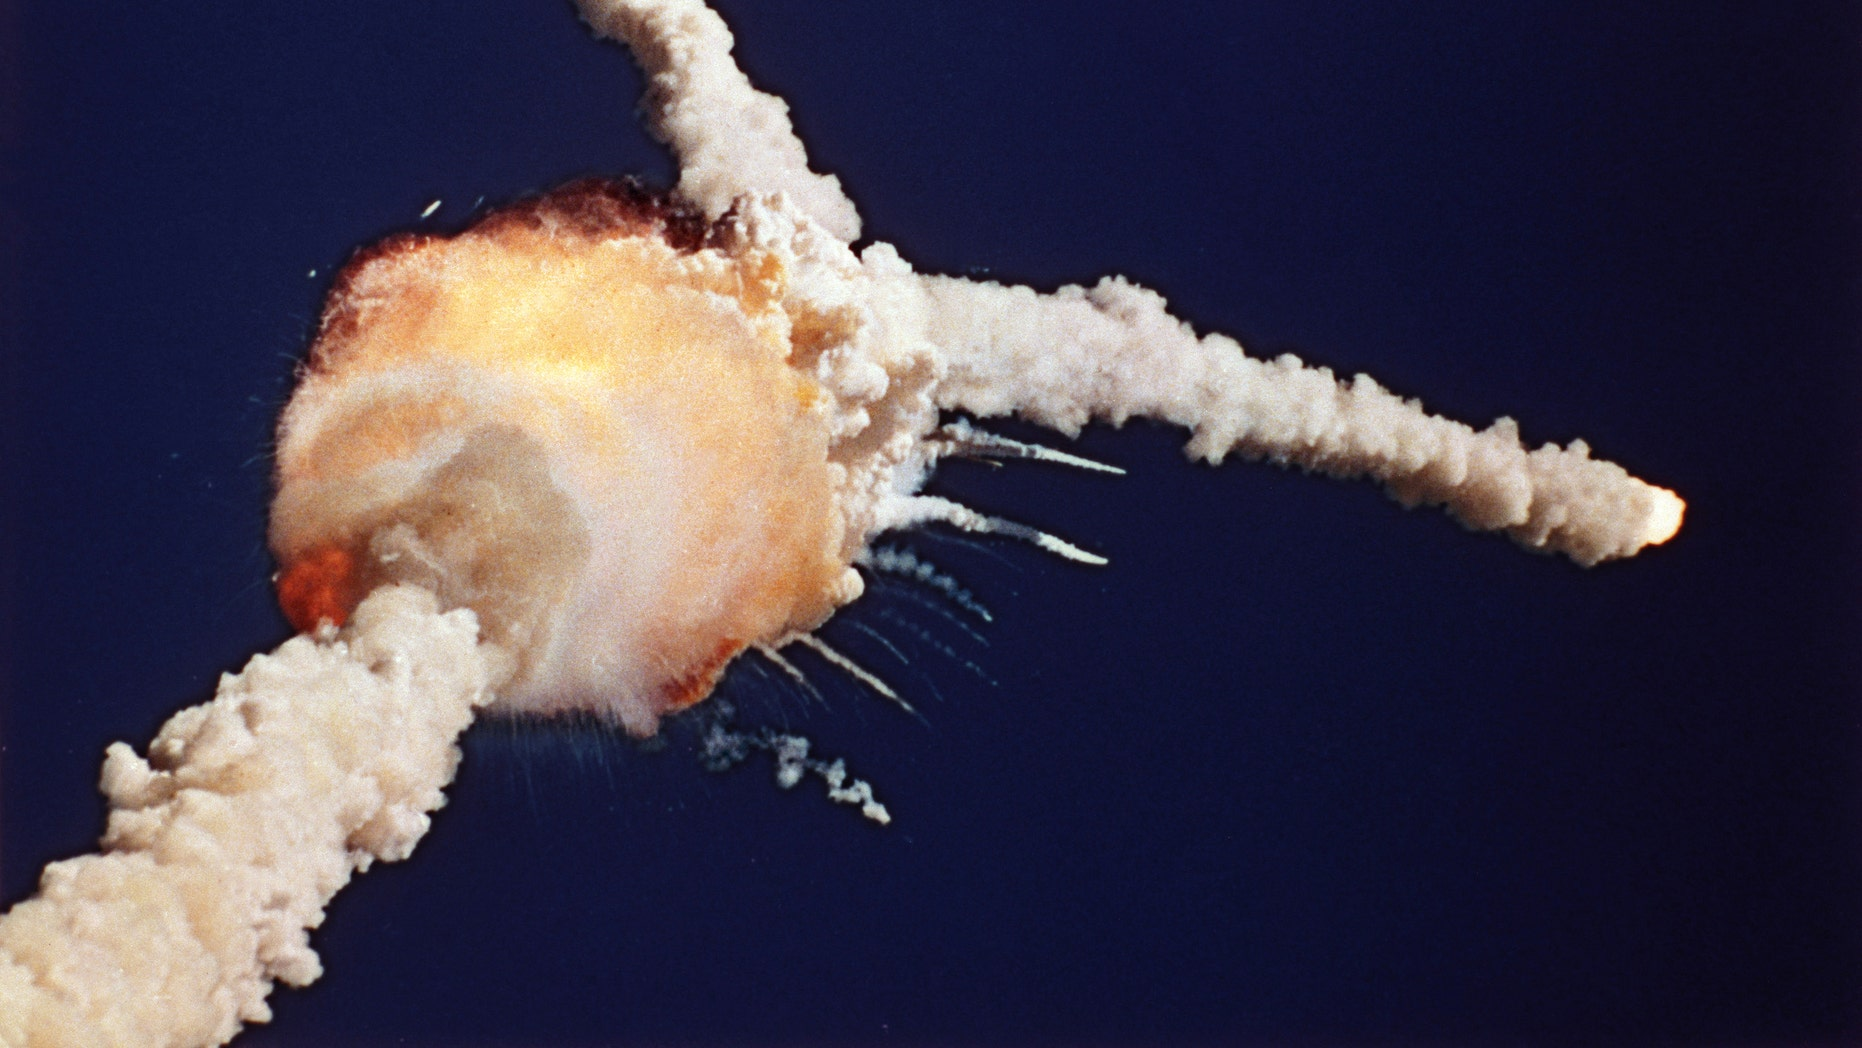 FILE - In this Jan. 28, 1986 file photo, the Space Shuttle Challenger explodes shortly after lifting off from Kennedy Space Center, in Fla. All seven crew members died in the explosion, which was blamed on faulty o-rings in the shuttle's booster rockets.(AP Photo/Bruce Weaver, File)